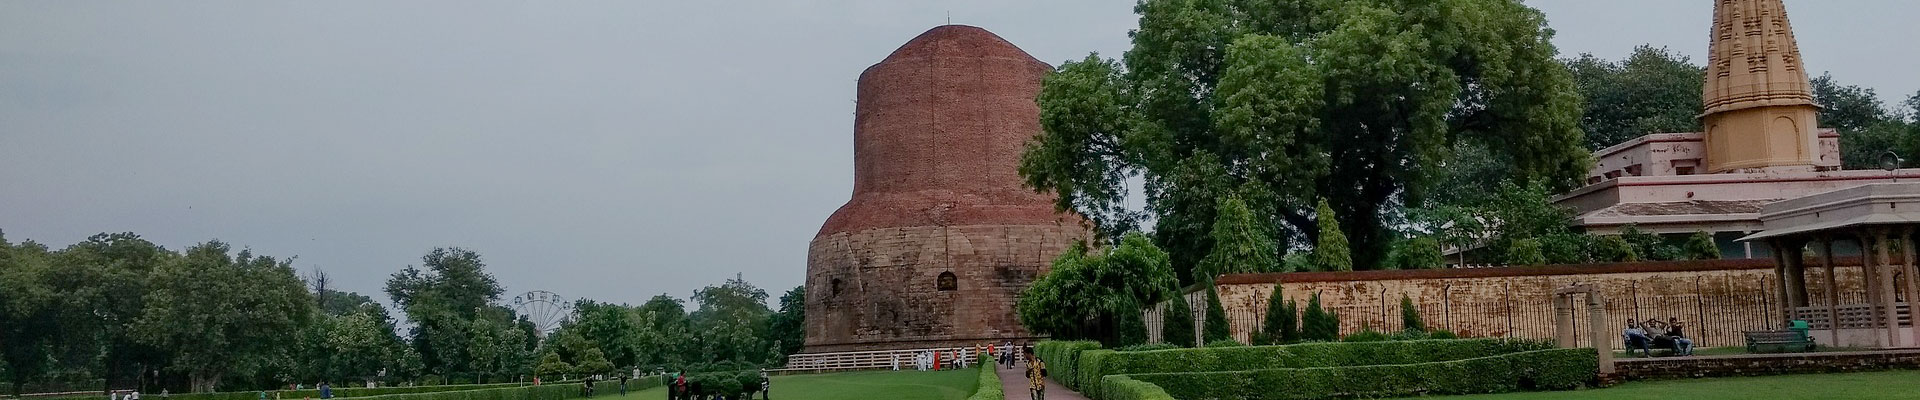 Tomb of Sarnath